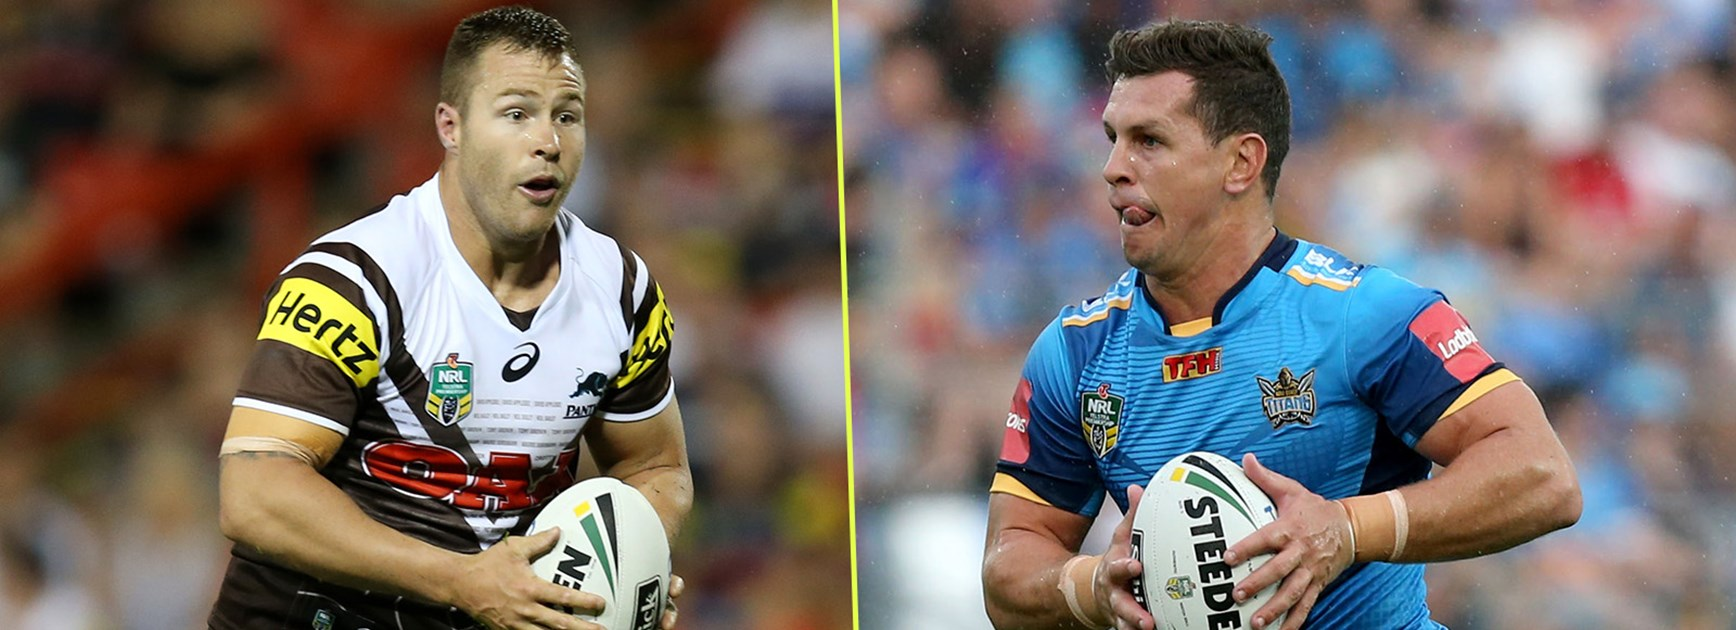 They are likely to be State of Origin teammates, but that won't matter when Trent Merrin and Greg Bird clash on Sunday.